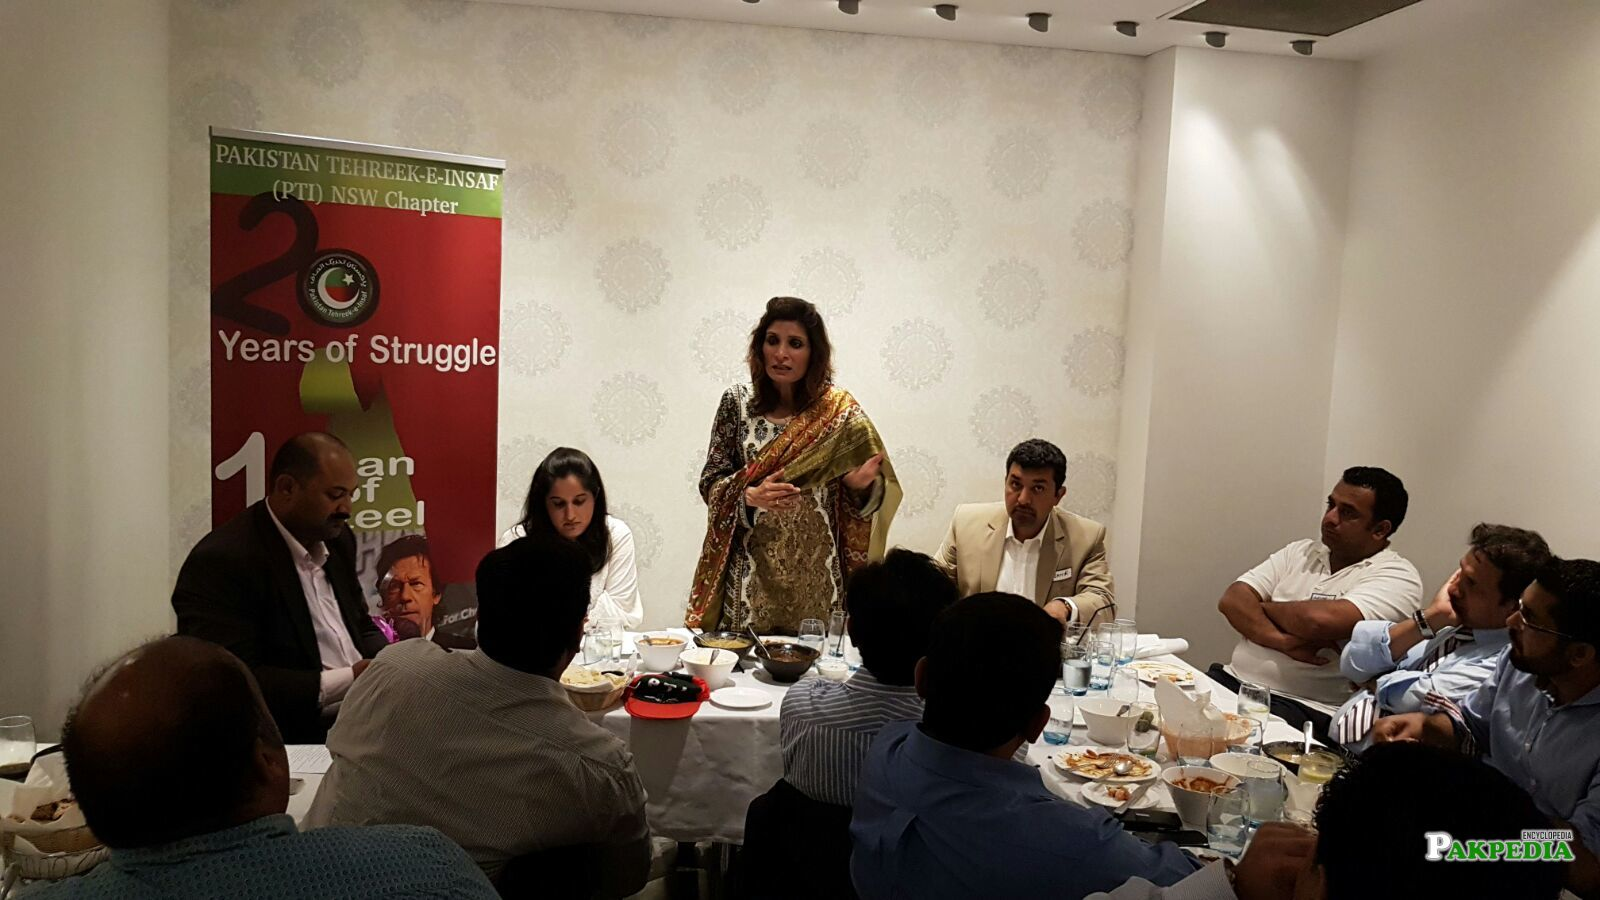 Dinner with PTI Members